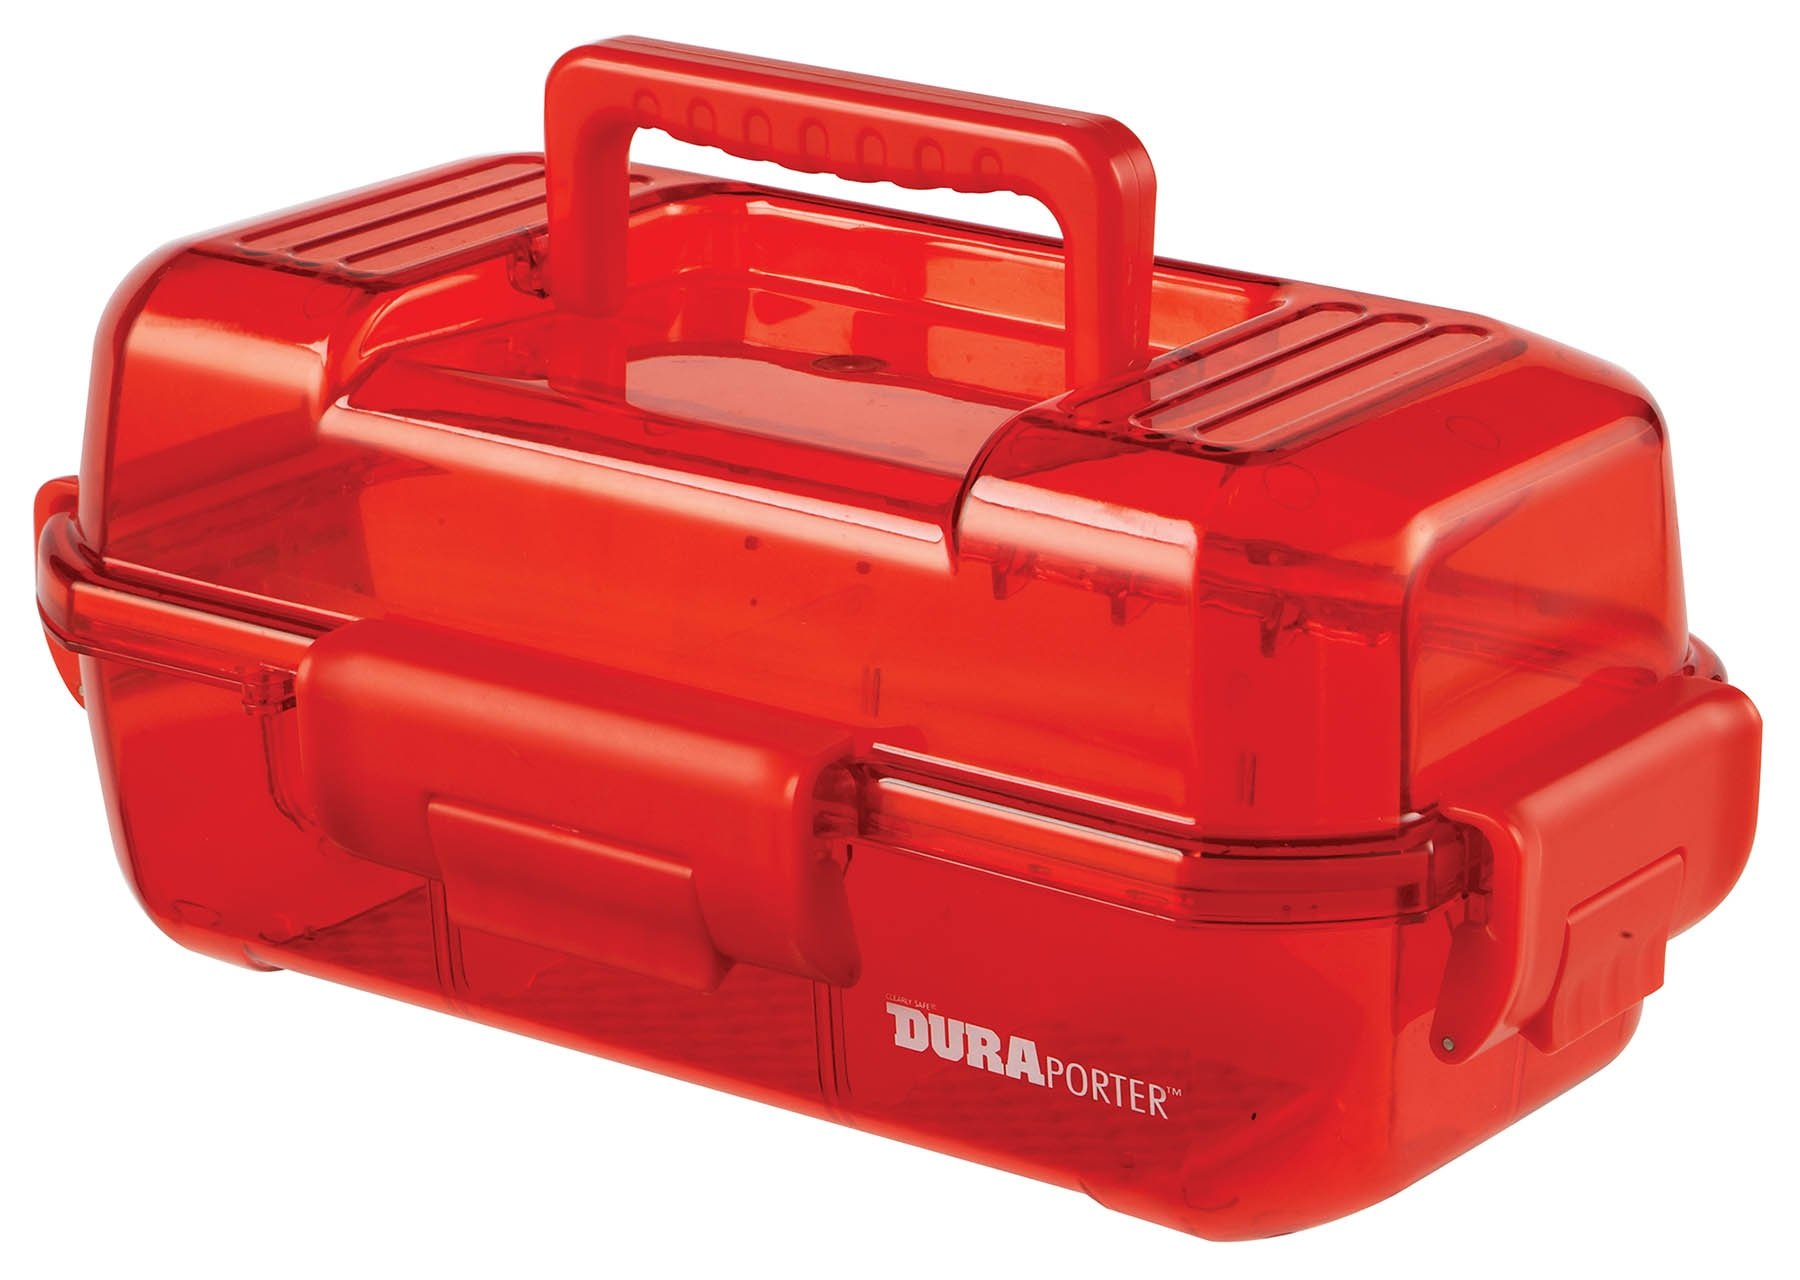 DuraPorter Transport Box - Red with Red Handle